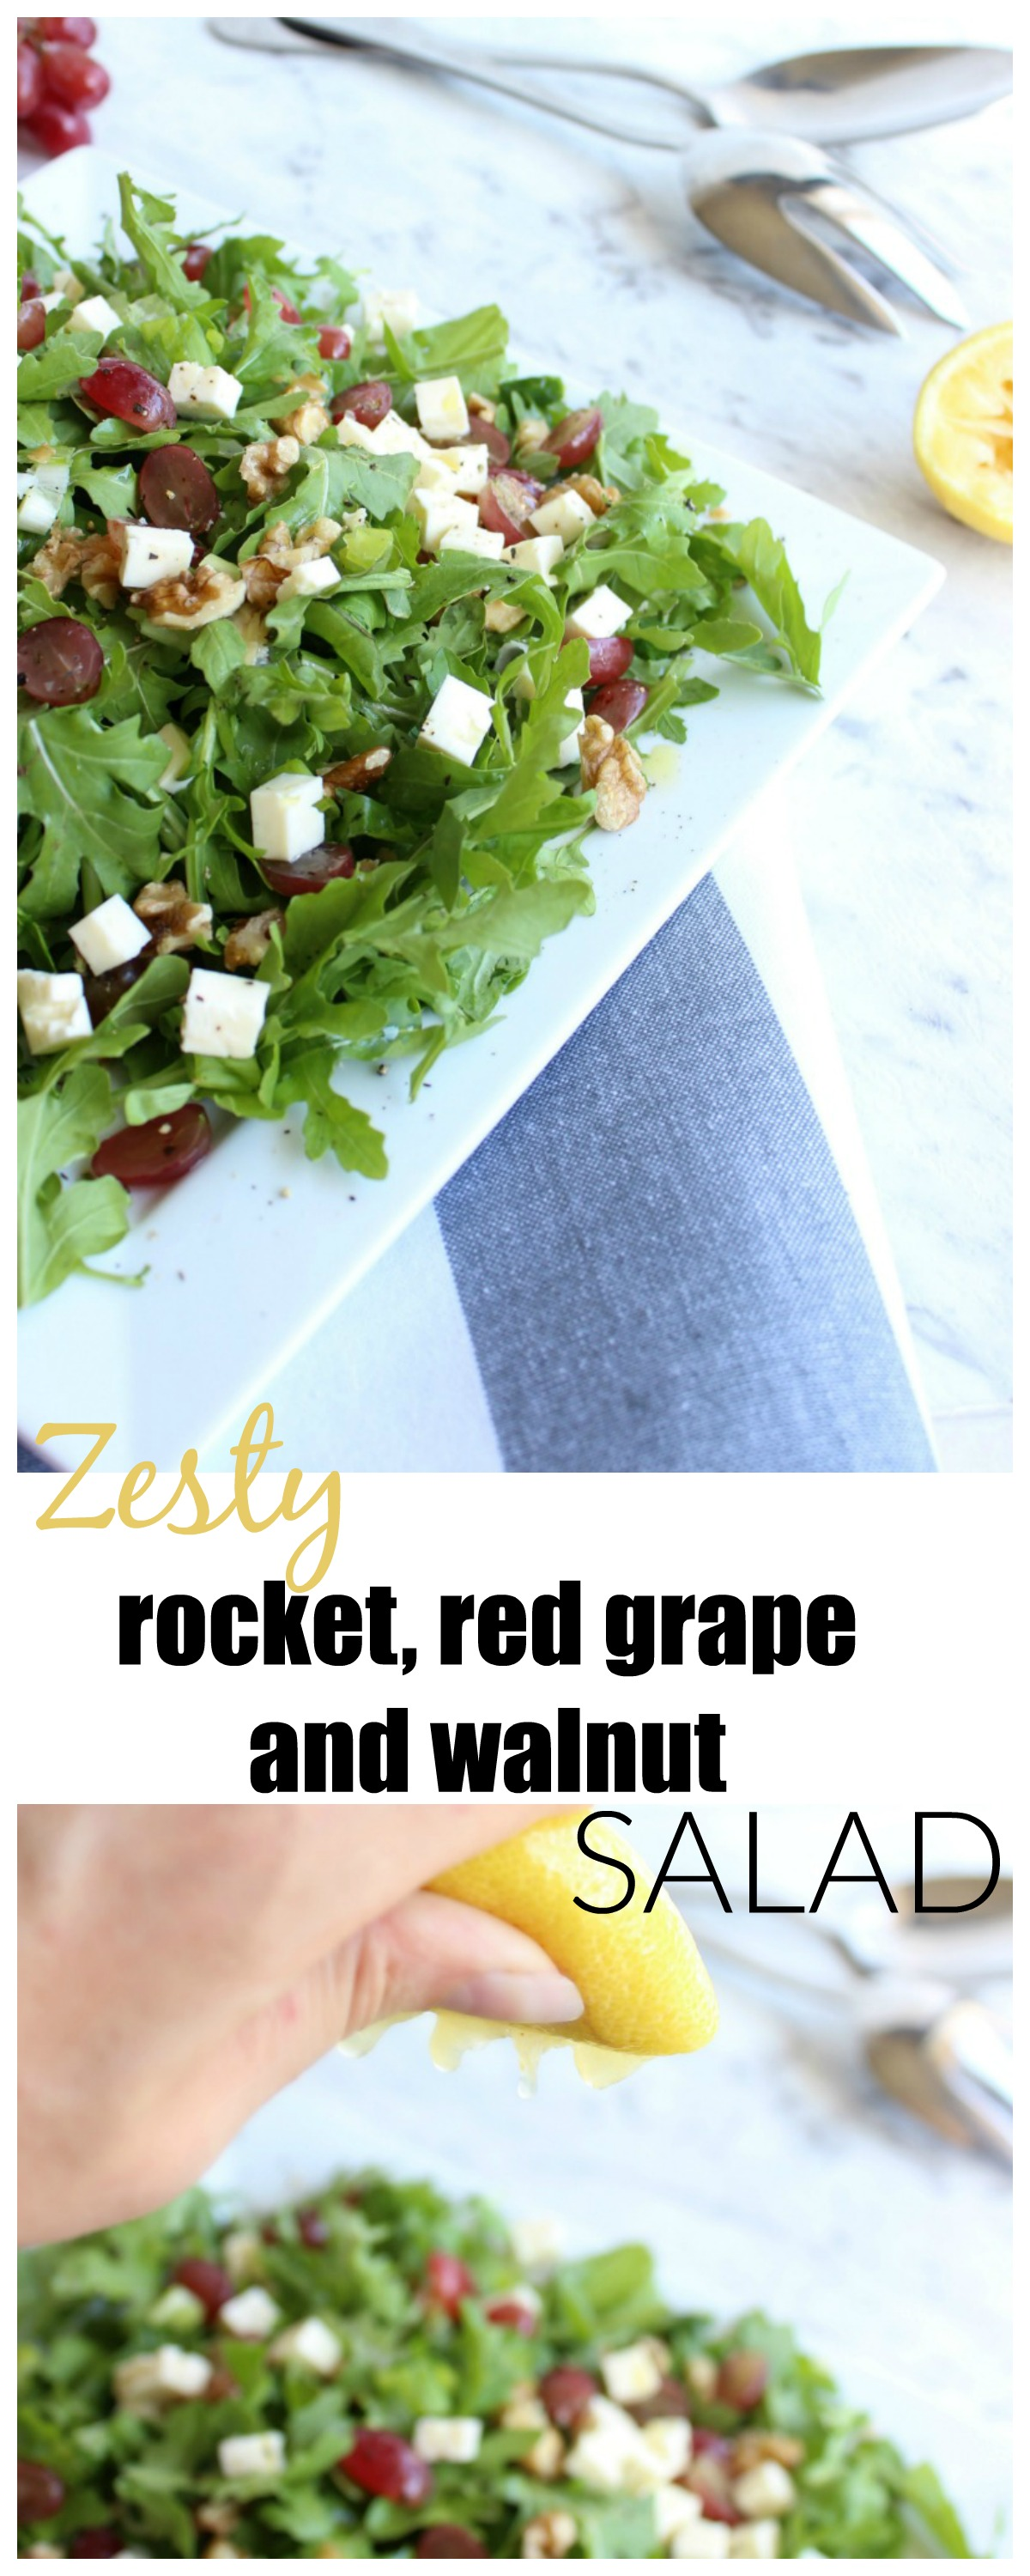 zesty rocket salad with red grape and walnut pin